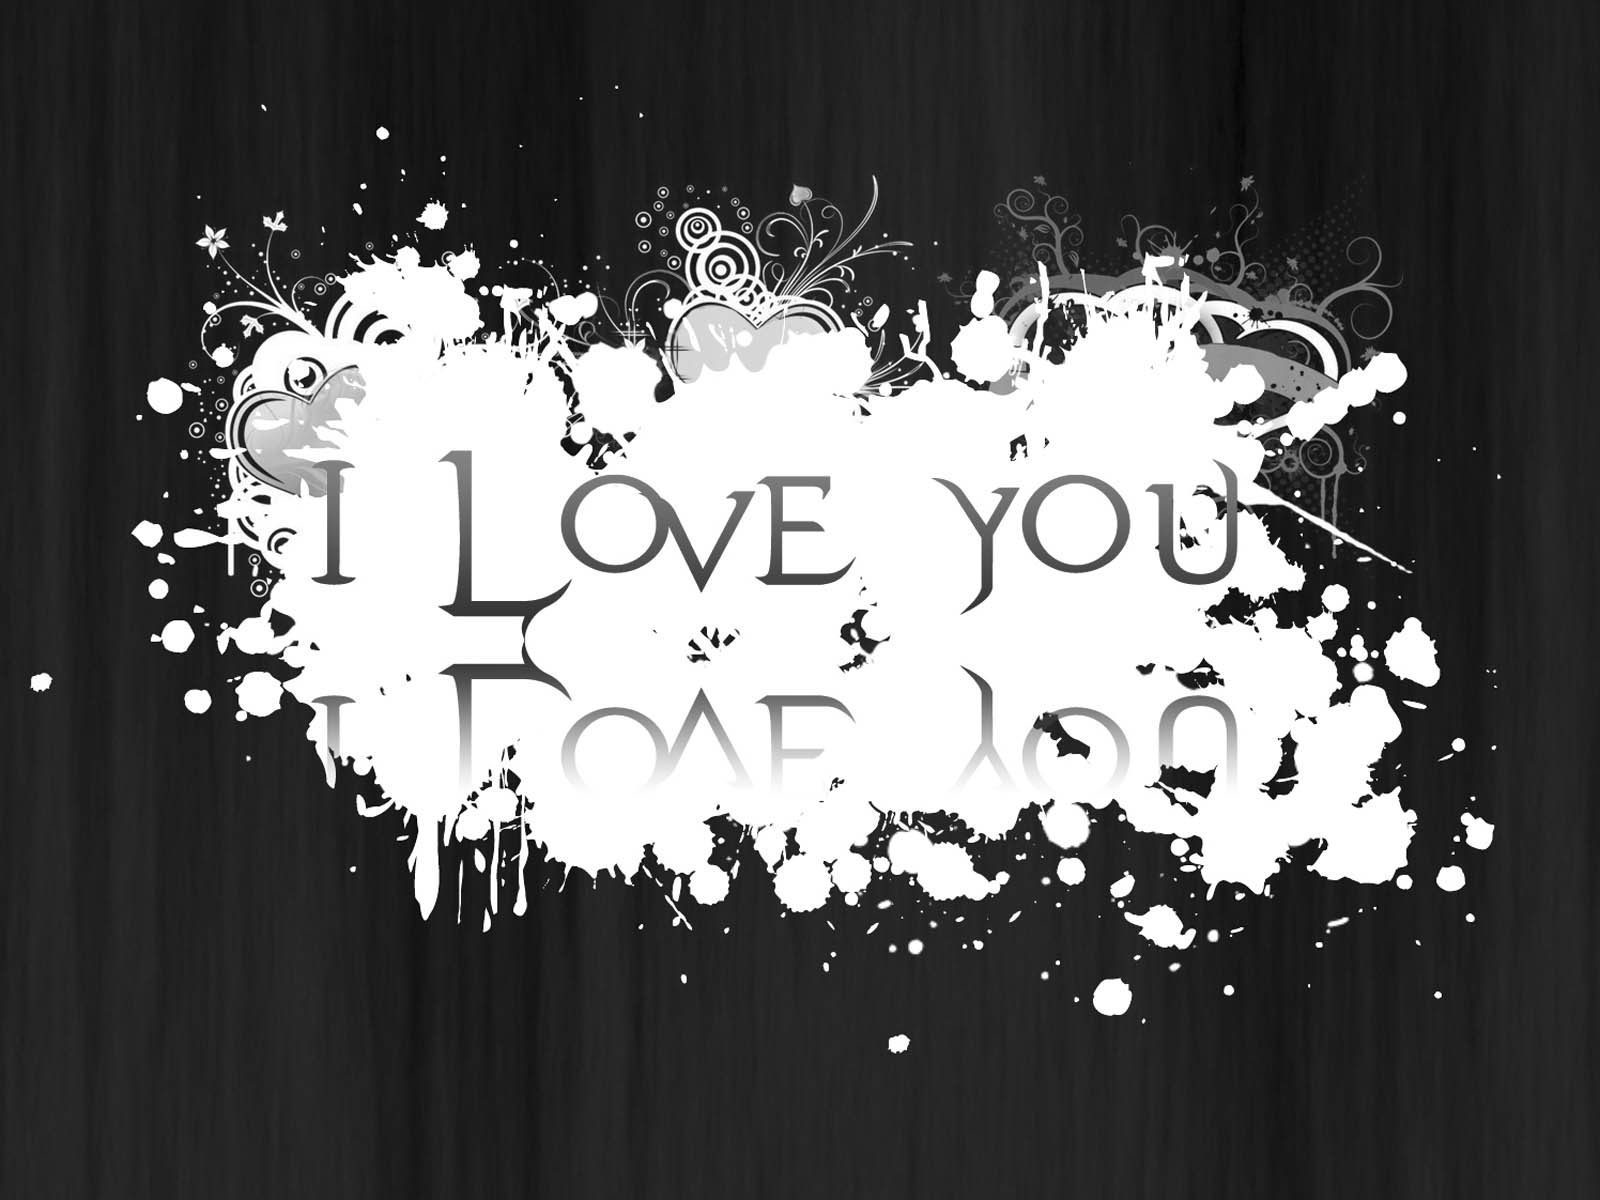 Love Wallpaper Black Background : wallpapers: Black and White Love Wallpapers